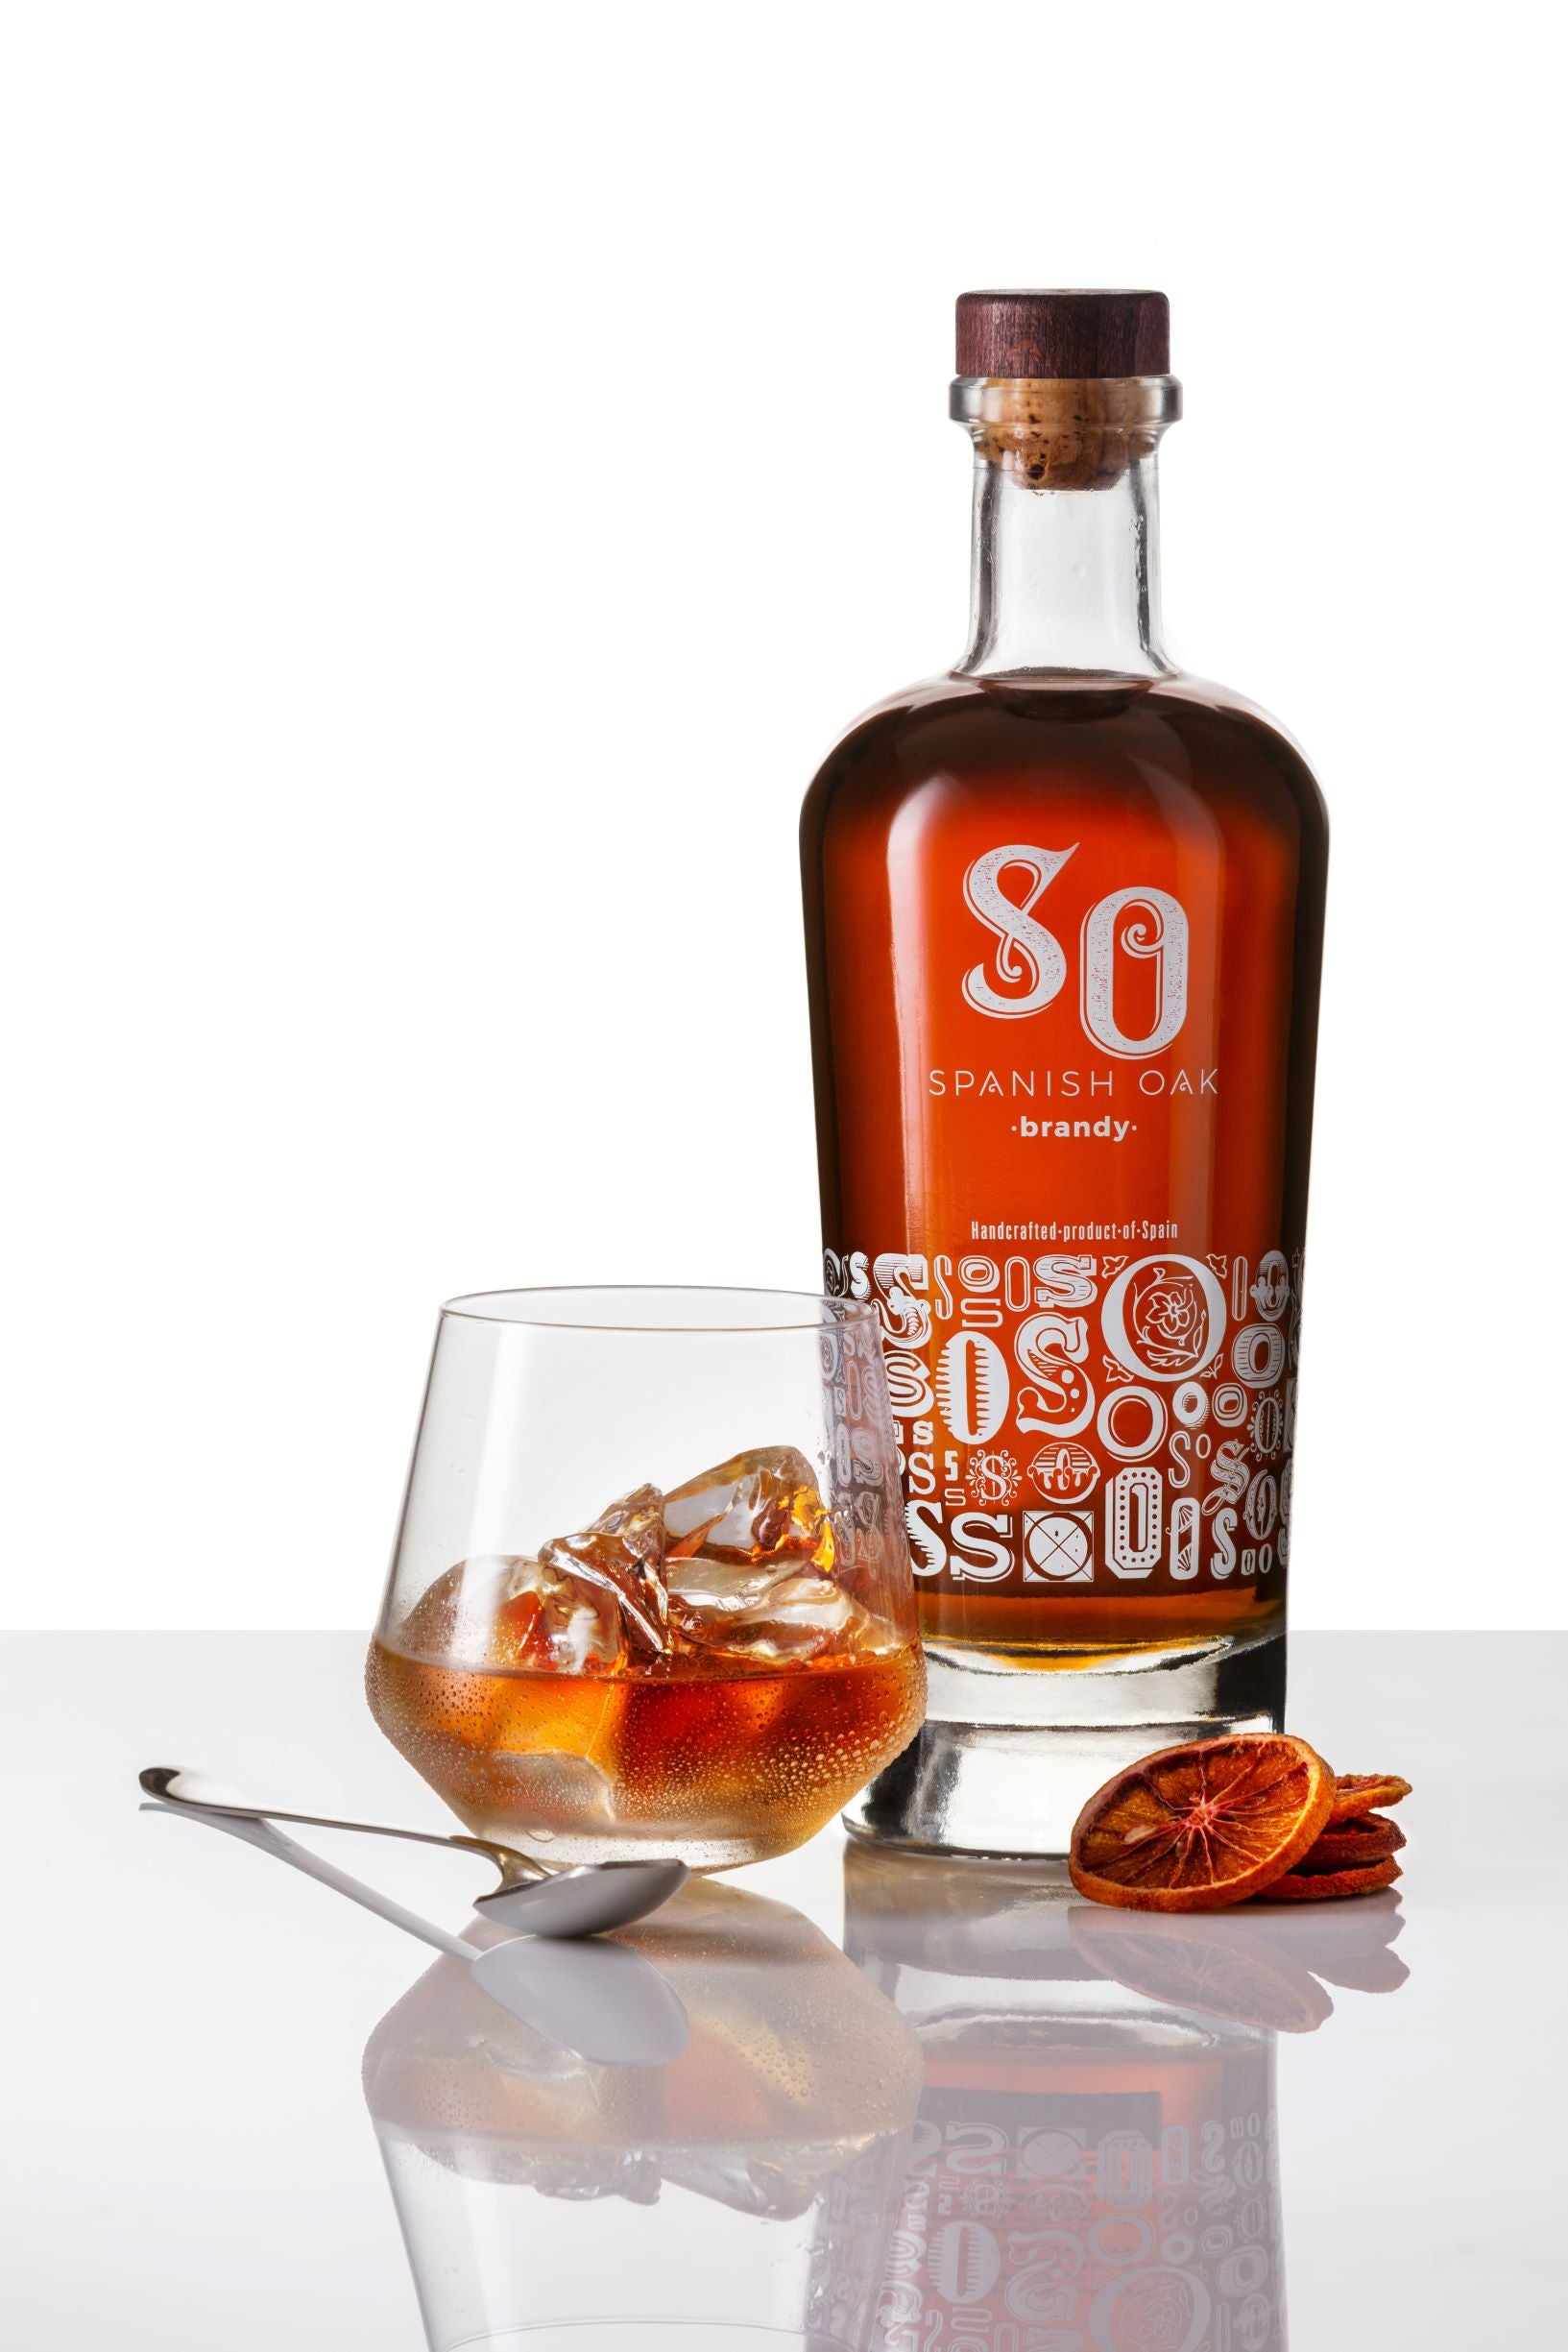 Spanish Oak ORIGINAL Solera Limited Edition